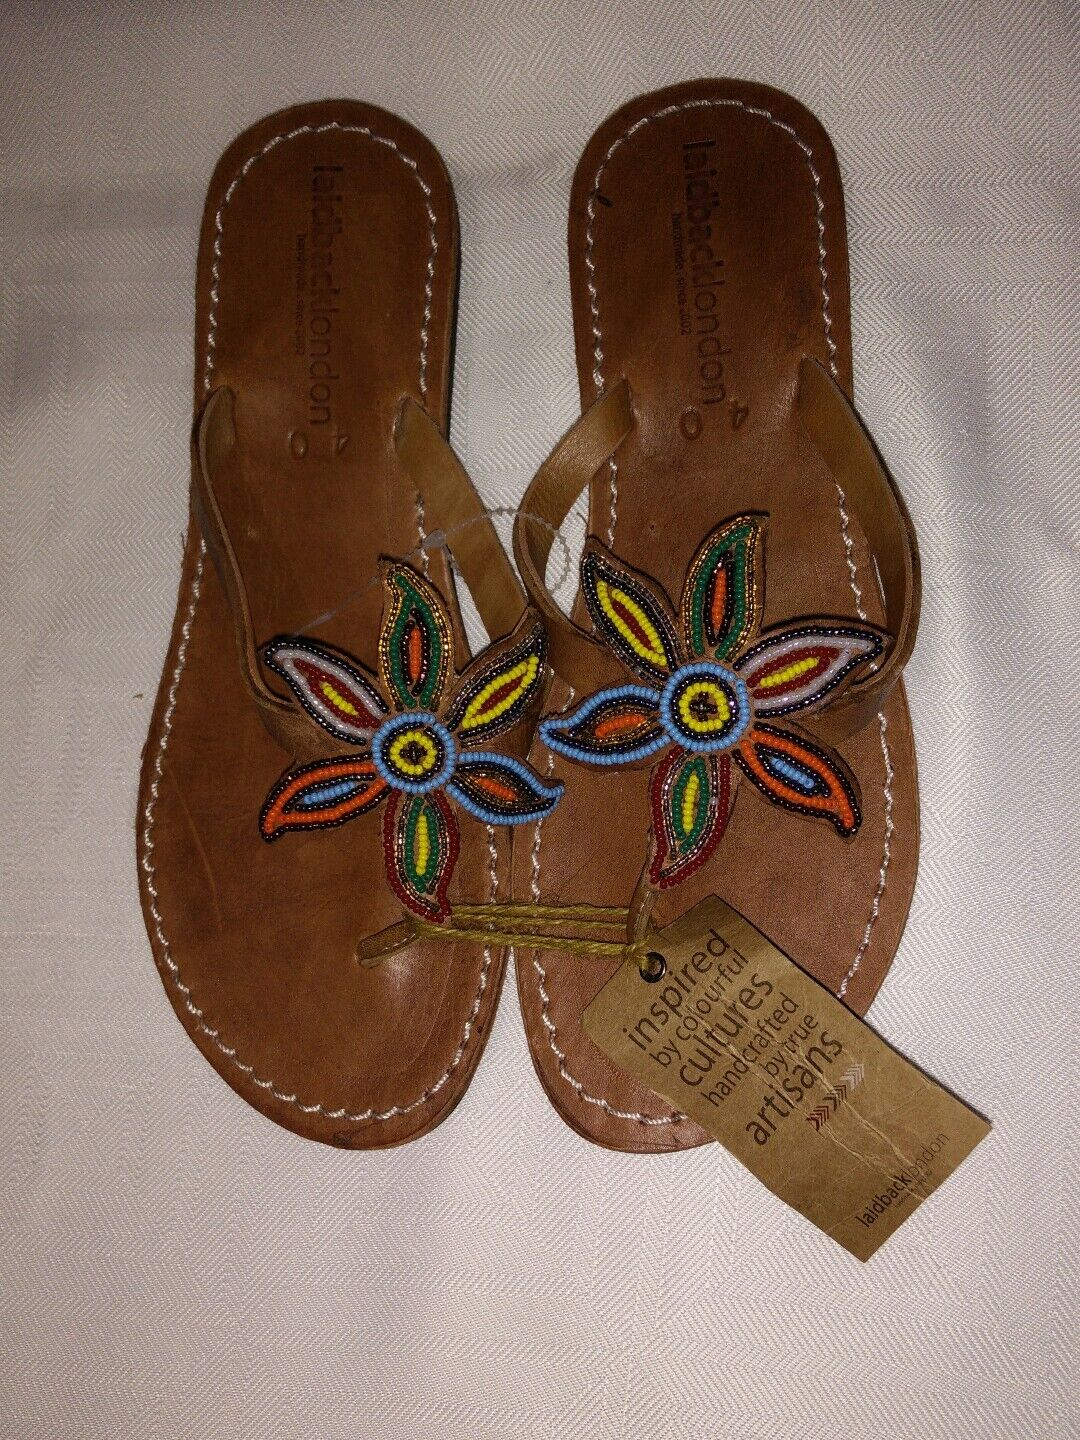 NWT LAIDBACK LONDON Anthropologie Leather sandals beaded floral handmade 40 9.5